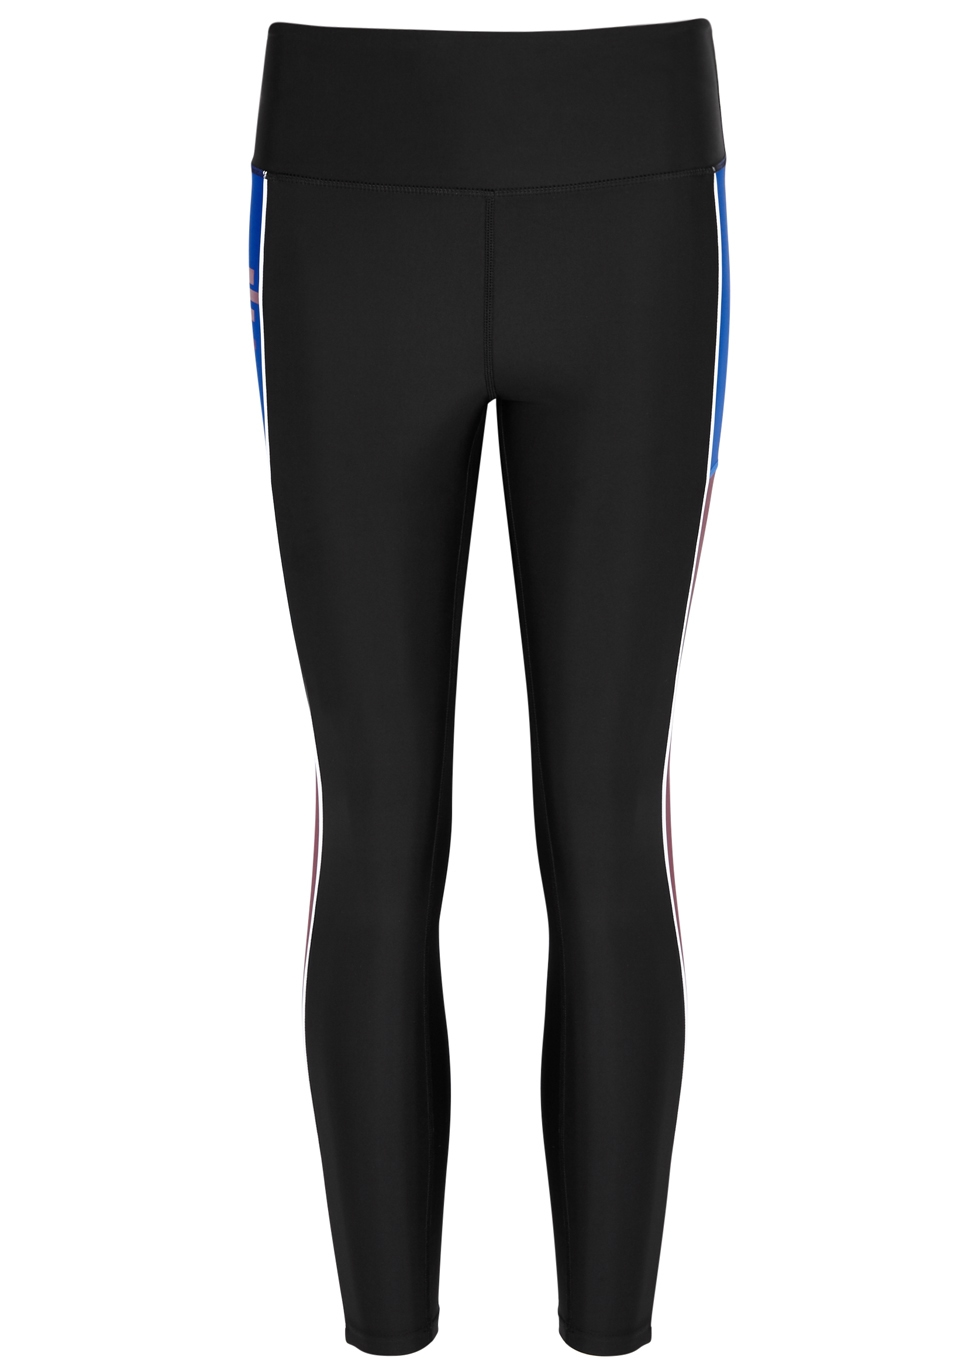 P.E NATION WITHOUT LIMIT CROPPED LEGGINGS